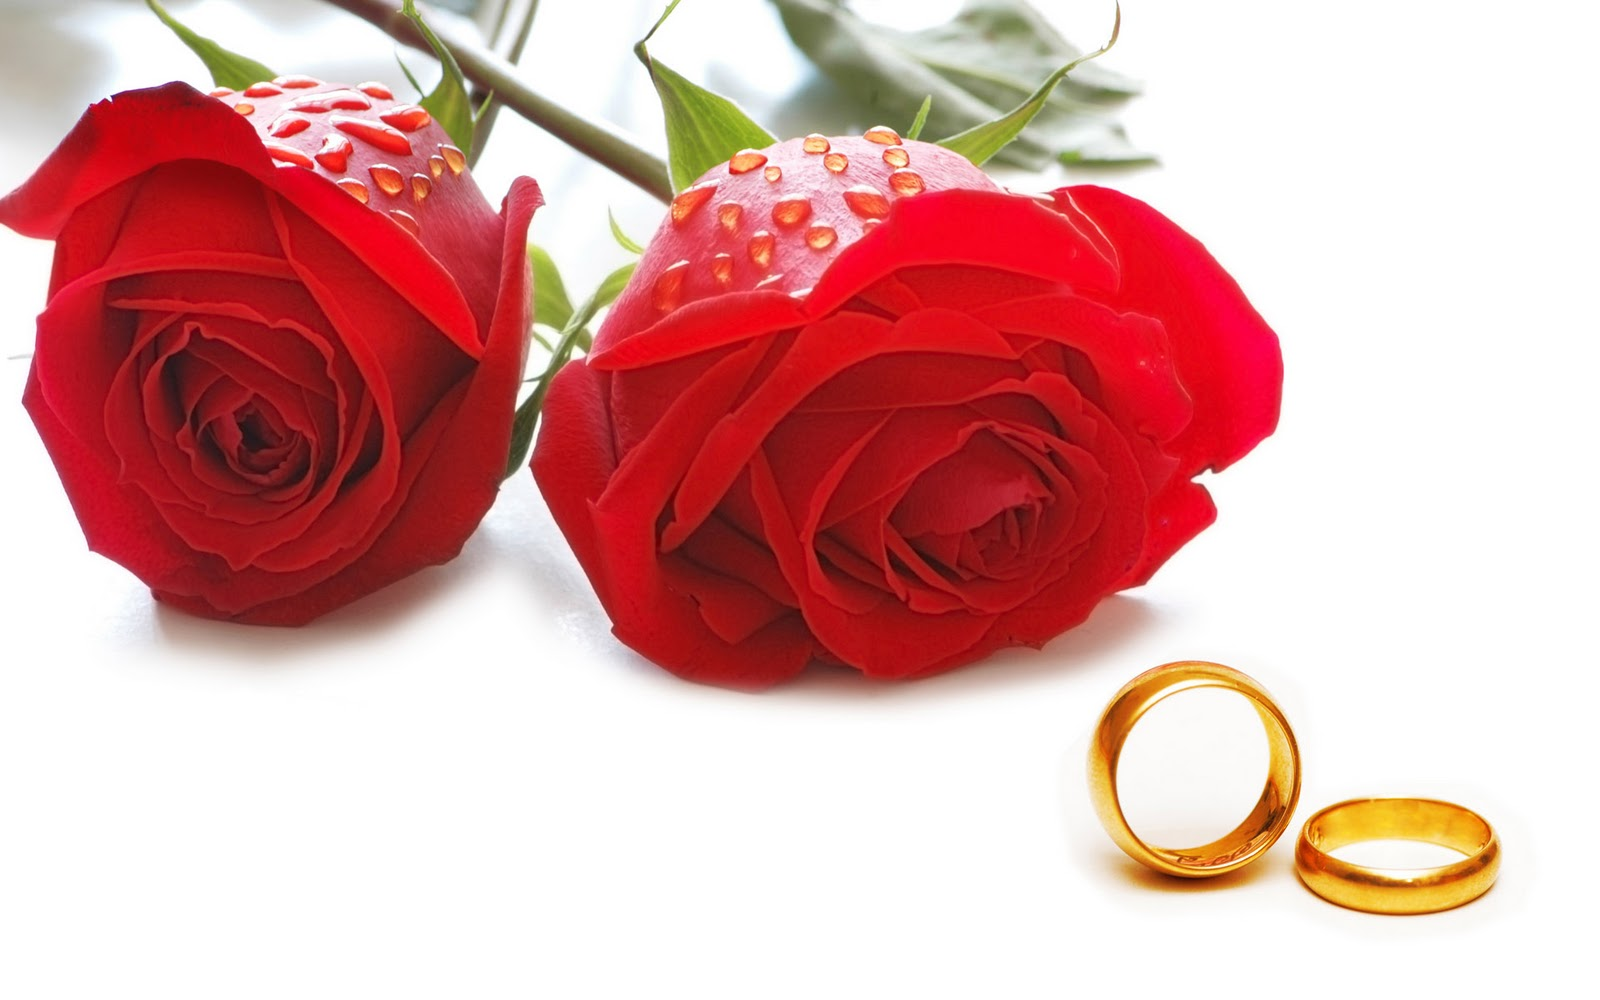 happy-rose-day-with-ring-hd-wallpaper